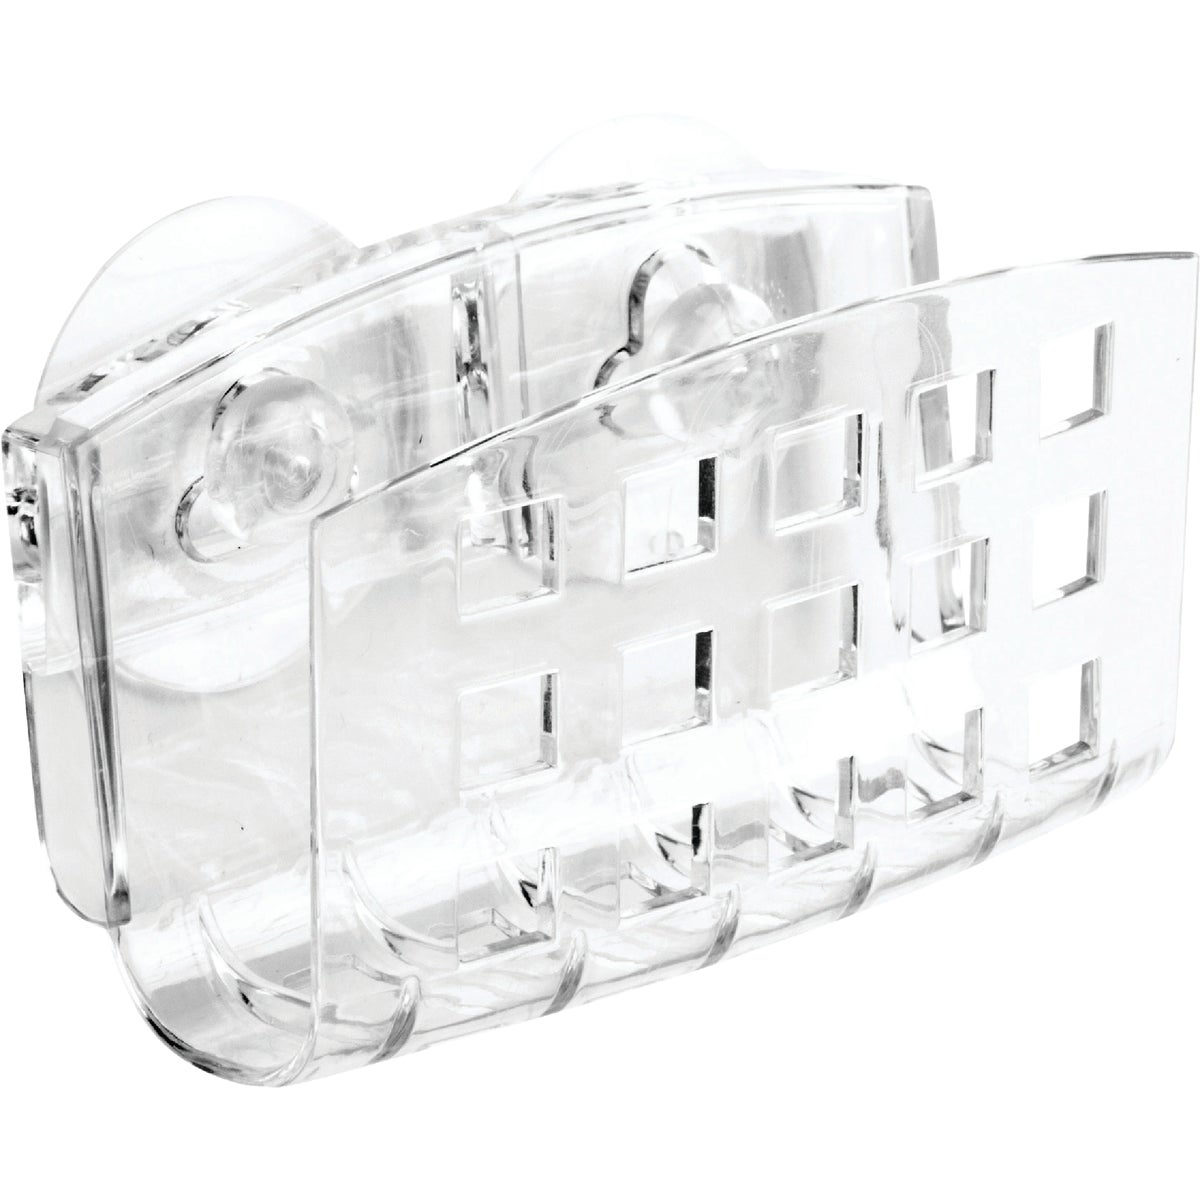 CLEAR SOAP HOLDER - 25200 by Interdesign Inc